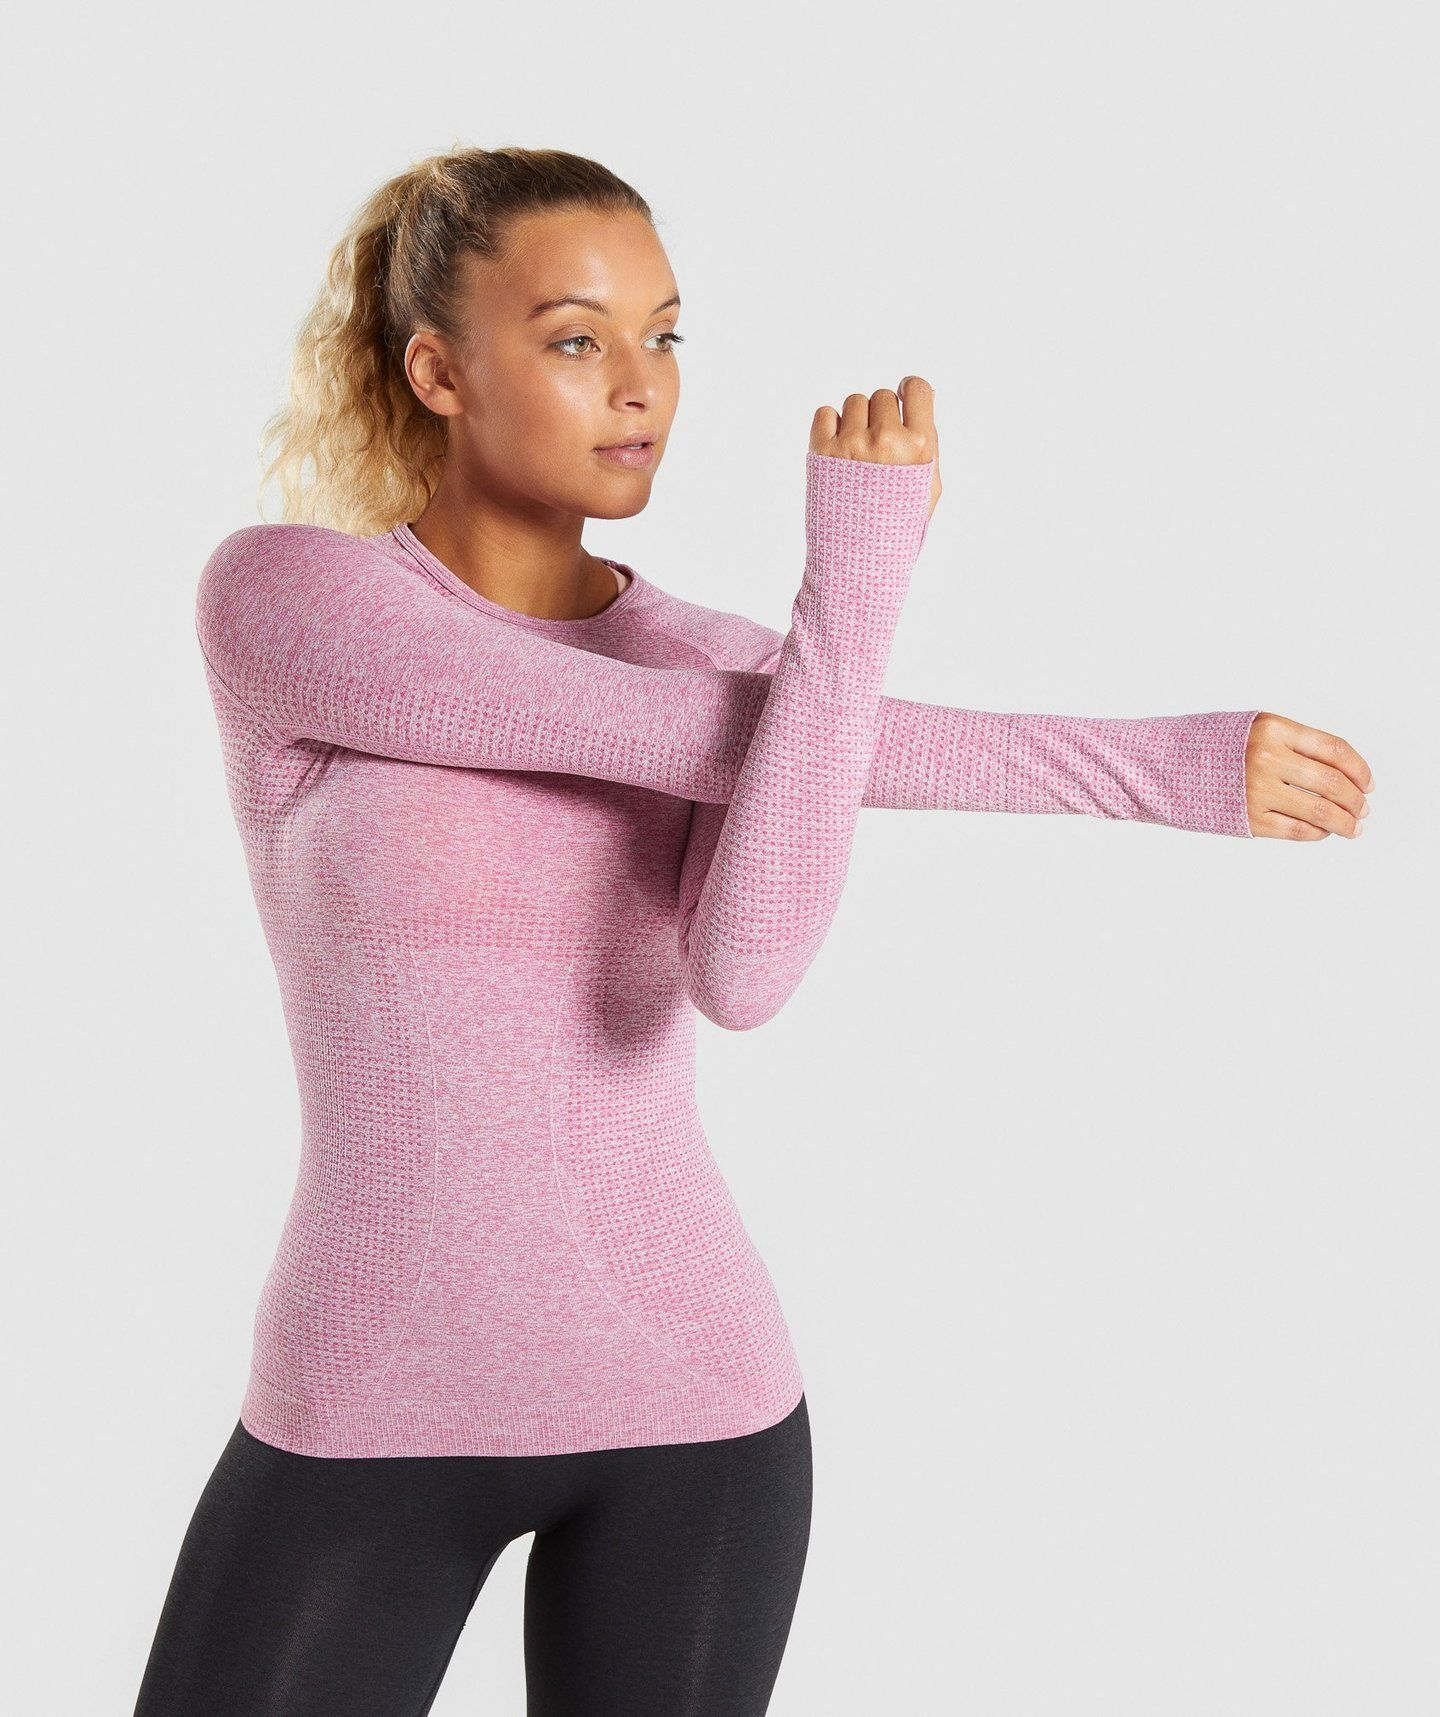 ae967c94 Full Length Dusty Pink Marl Vital Seamless Long Sleeve T-Shirt Front  Stretch 4